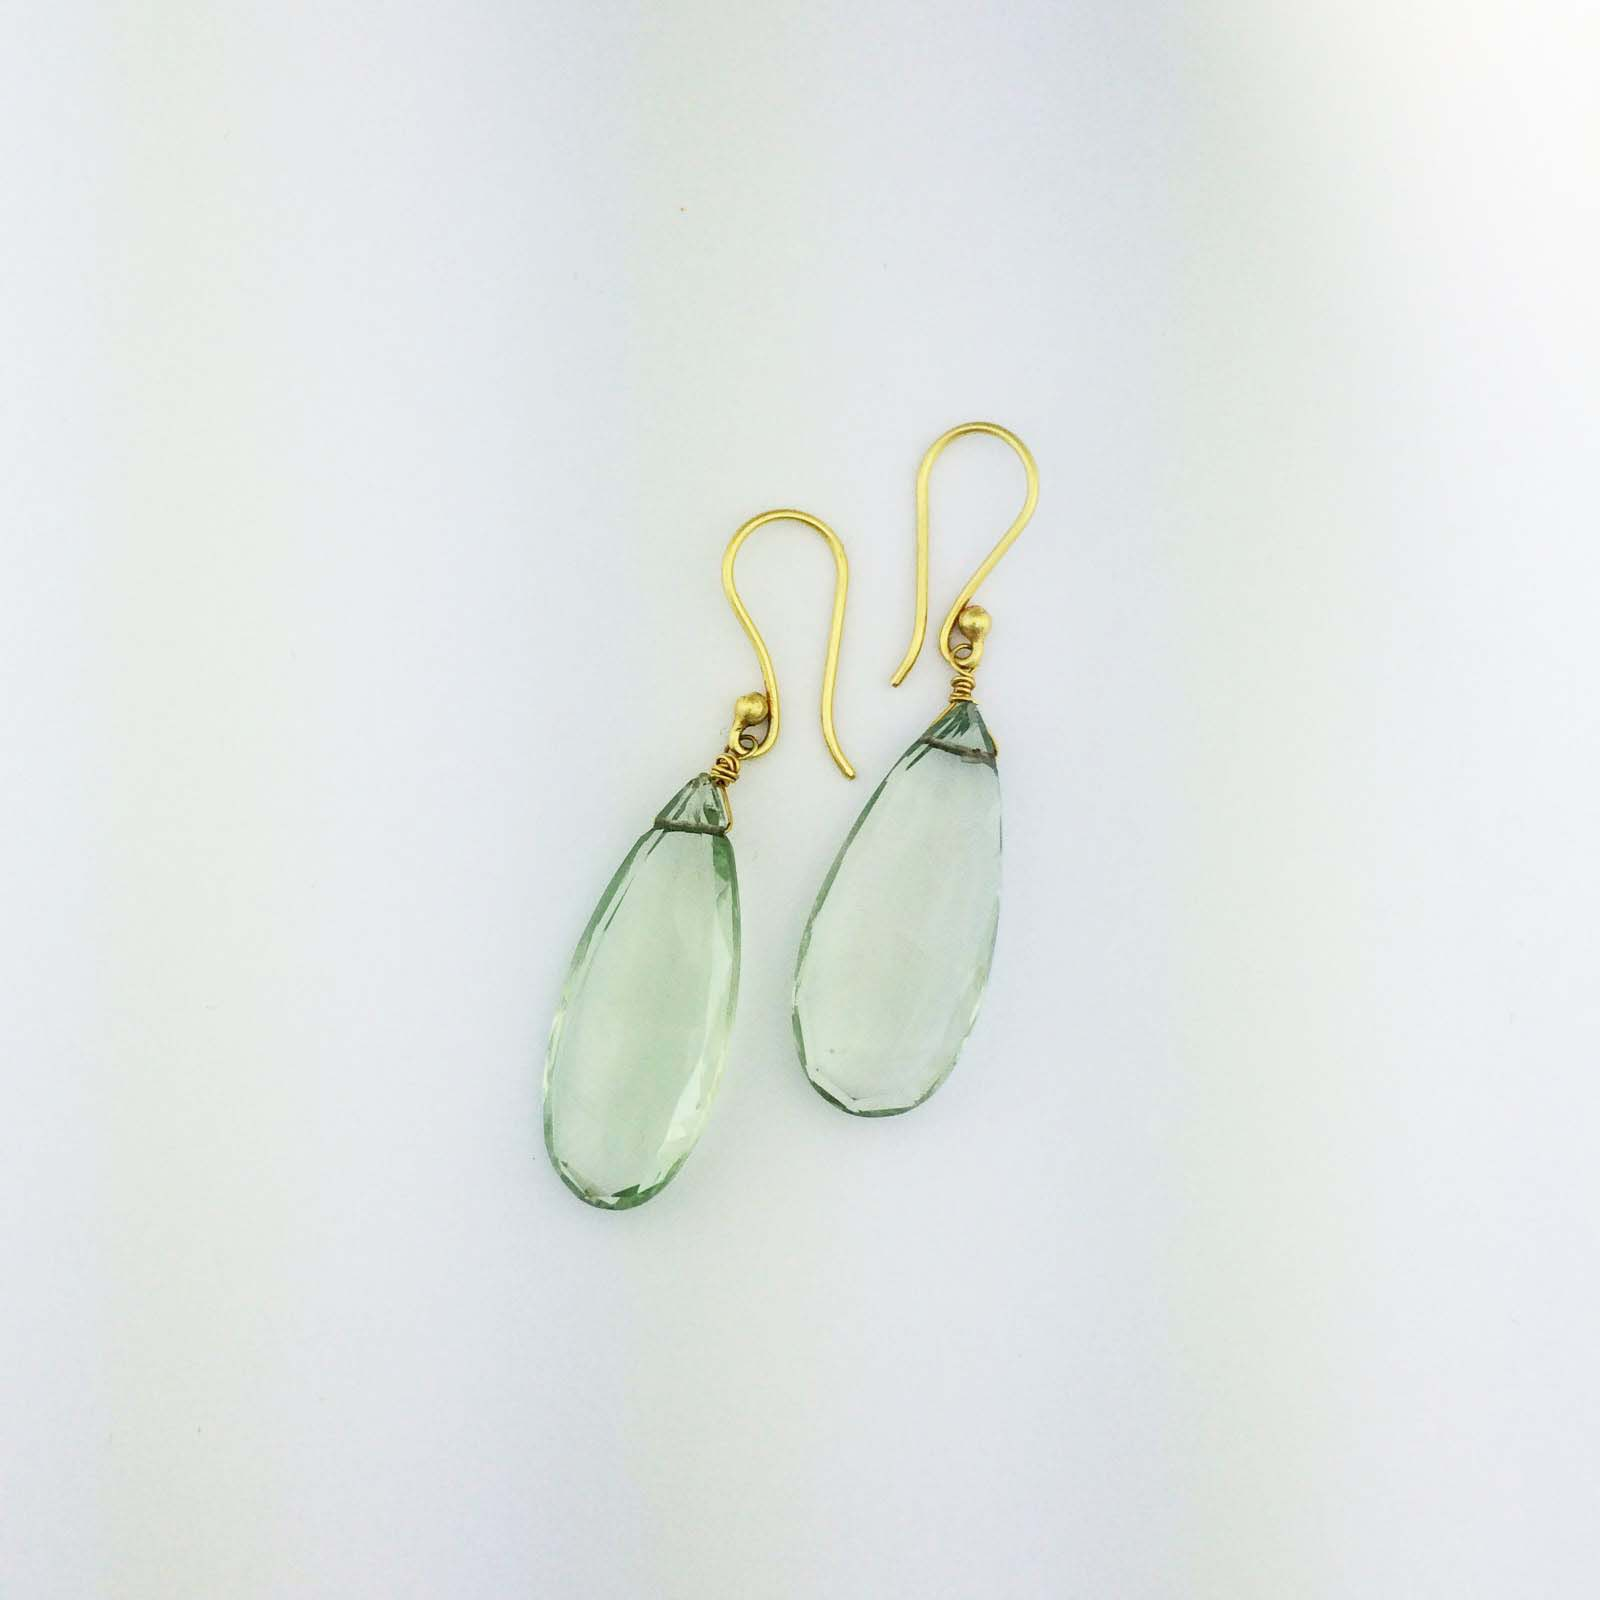 Large 18k green beryl drop earrings